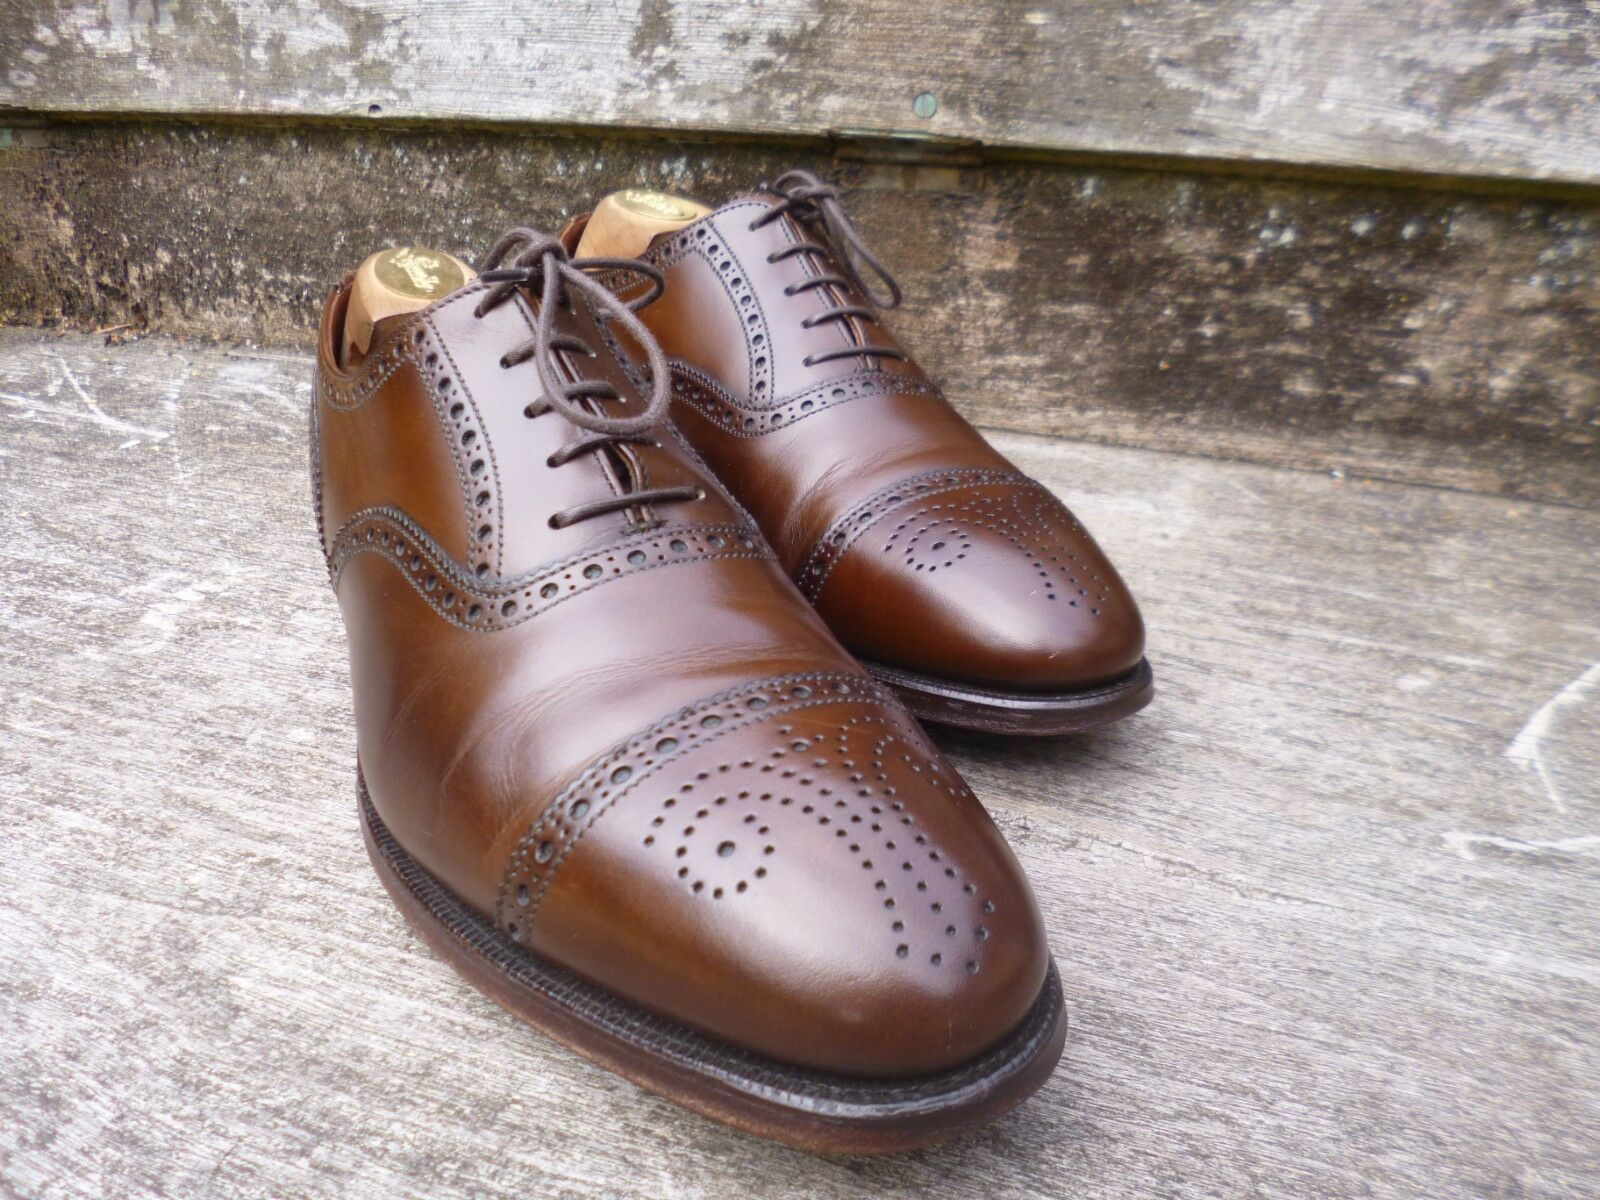 CROCKETT & JONES BROGUES – BROWN - UK UK - 8.5 –  COVENTRY - EXCELLENT CONDITION e62d0b